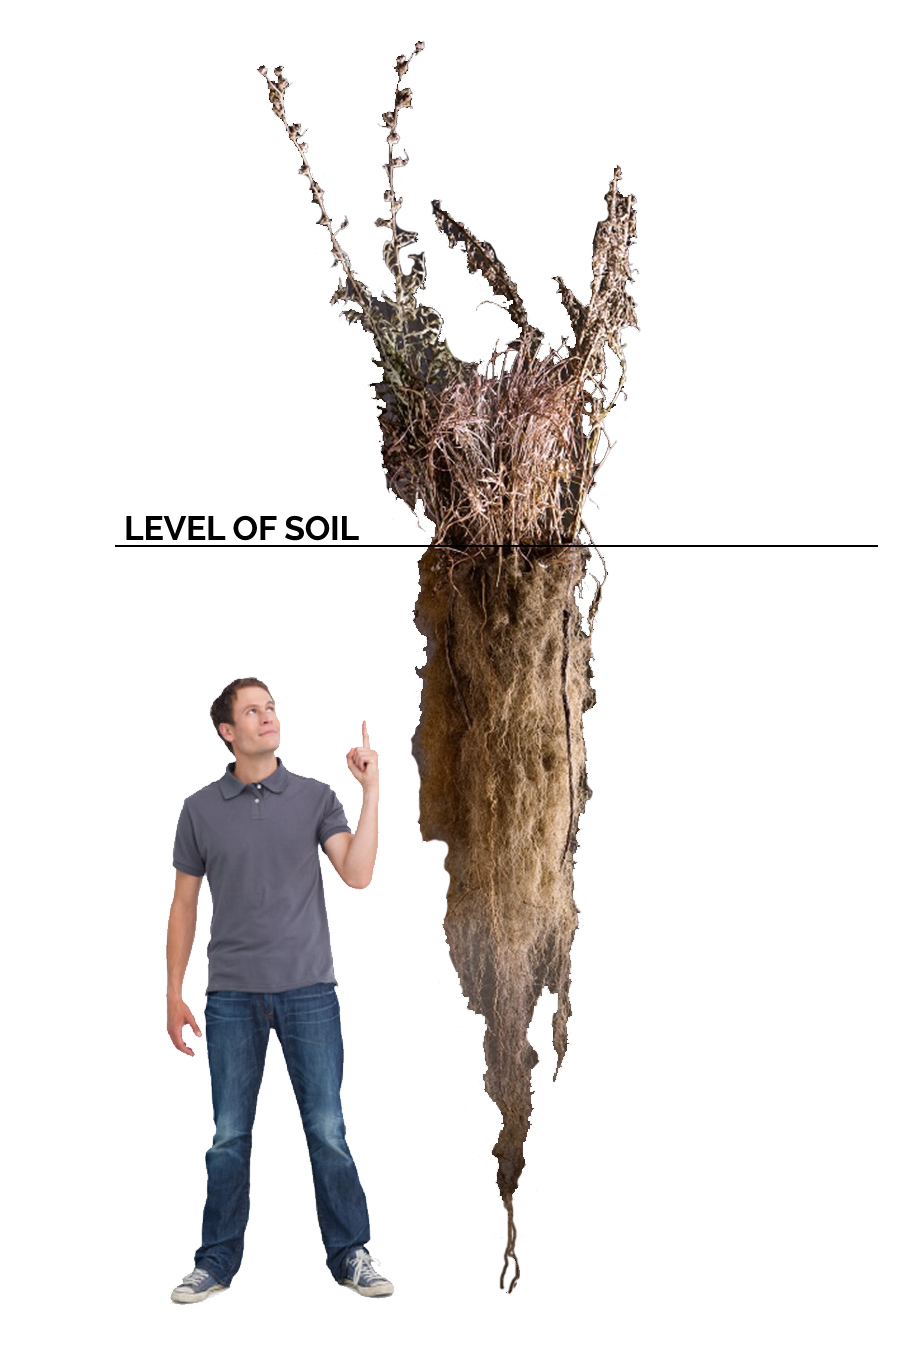 man compared to root depth